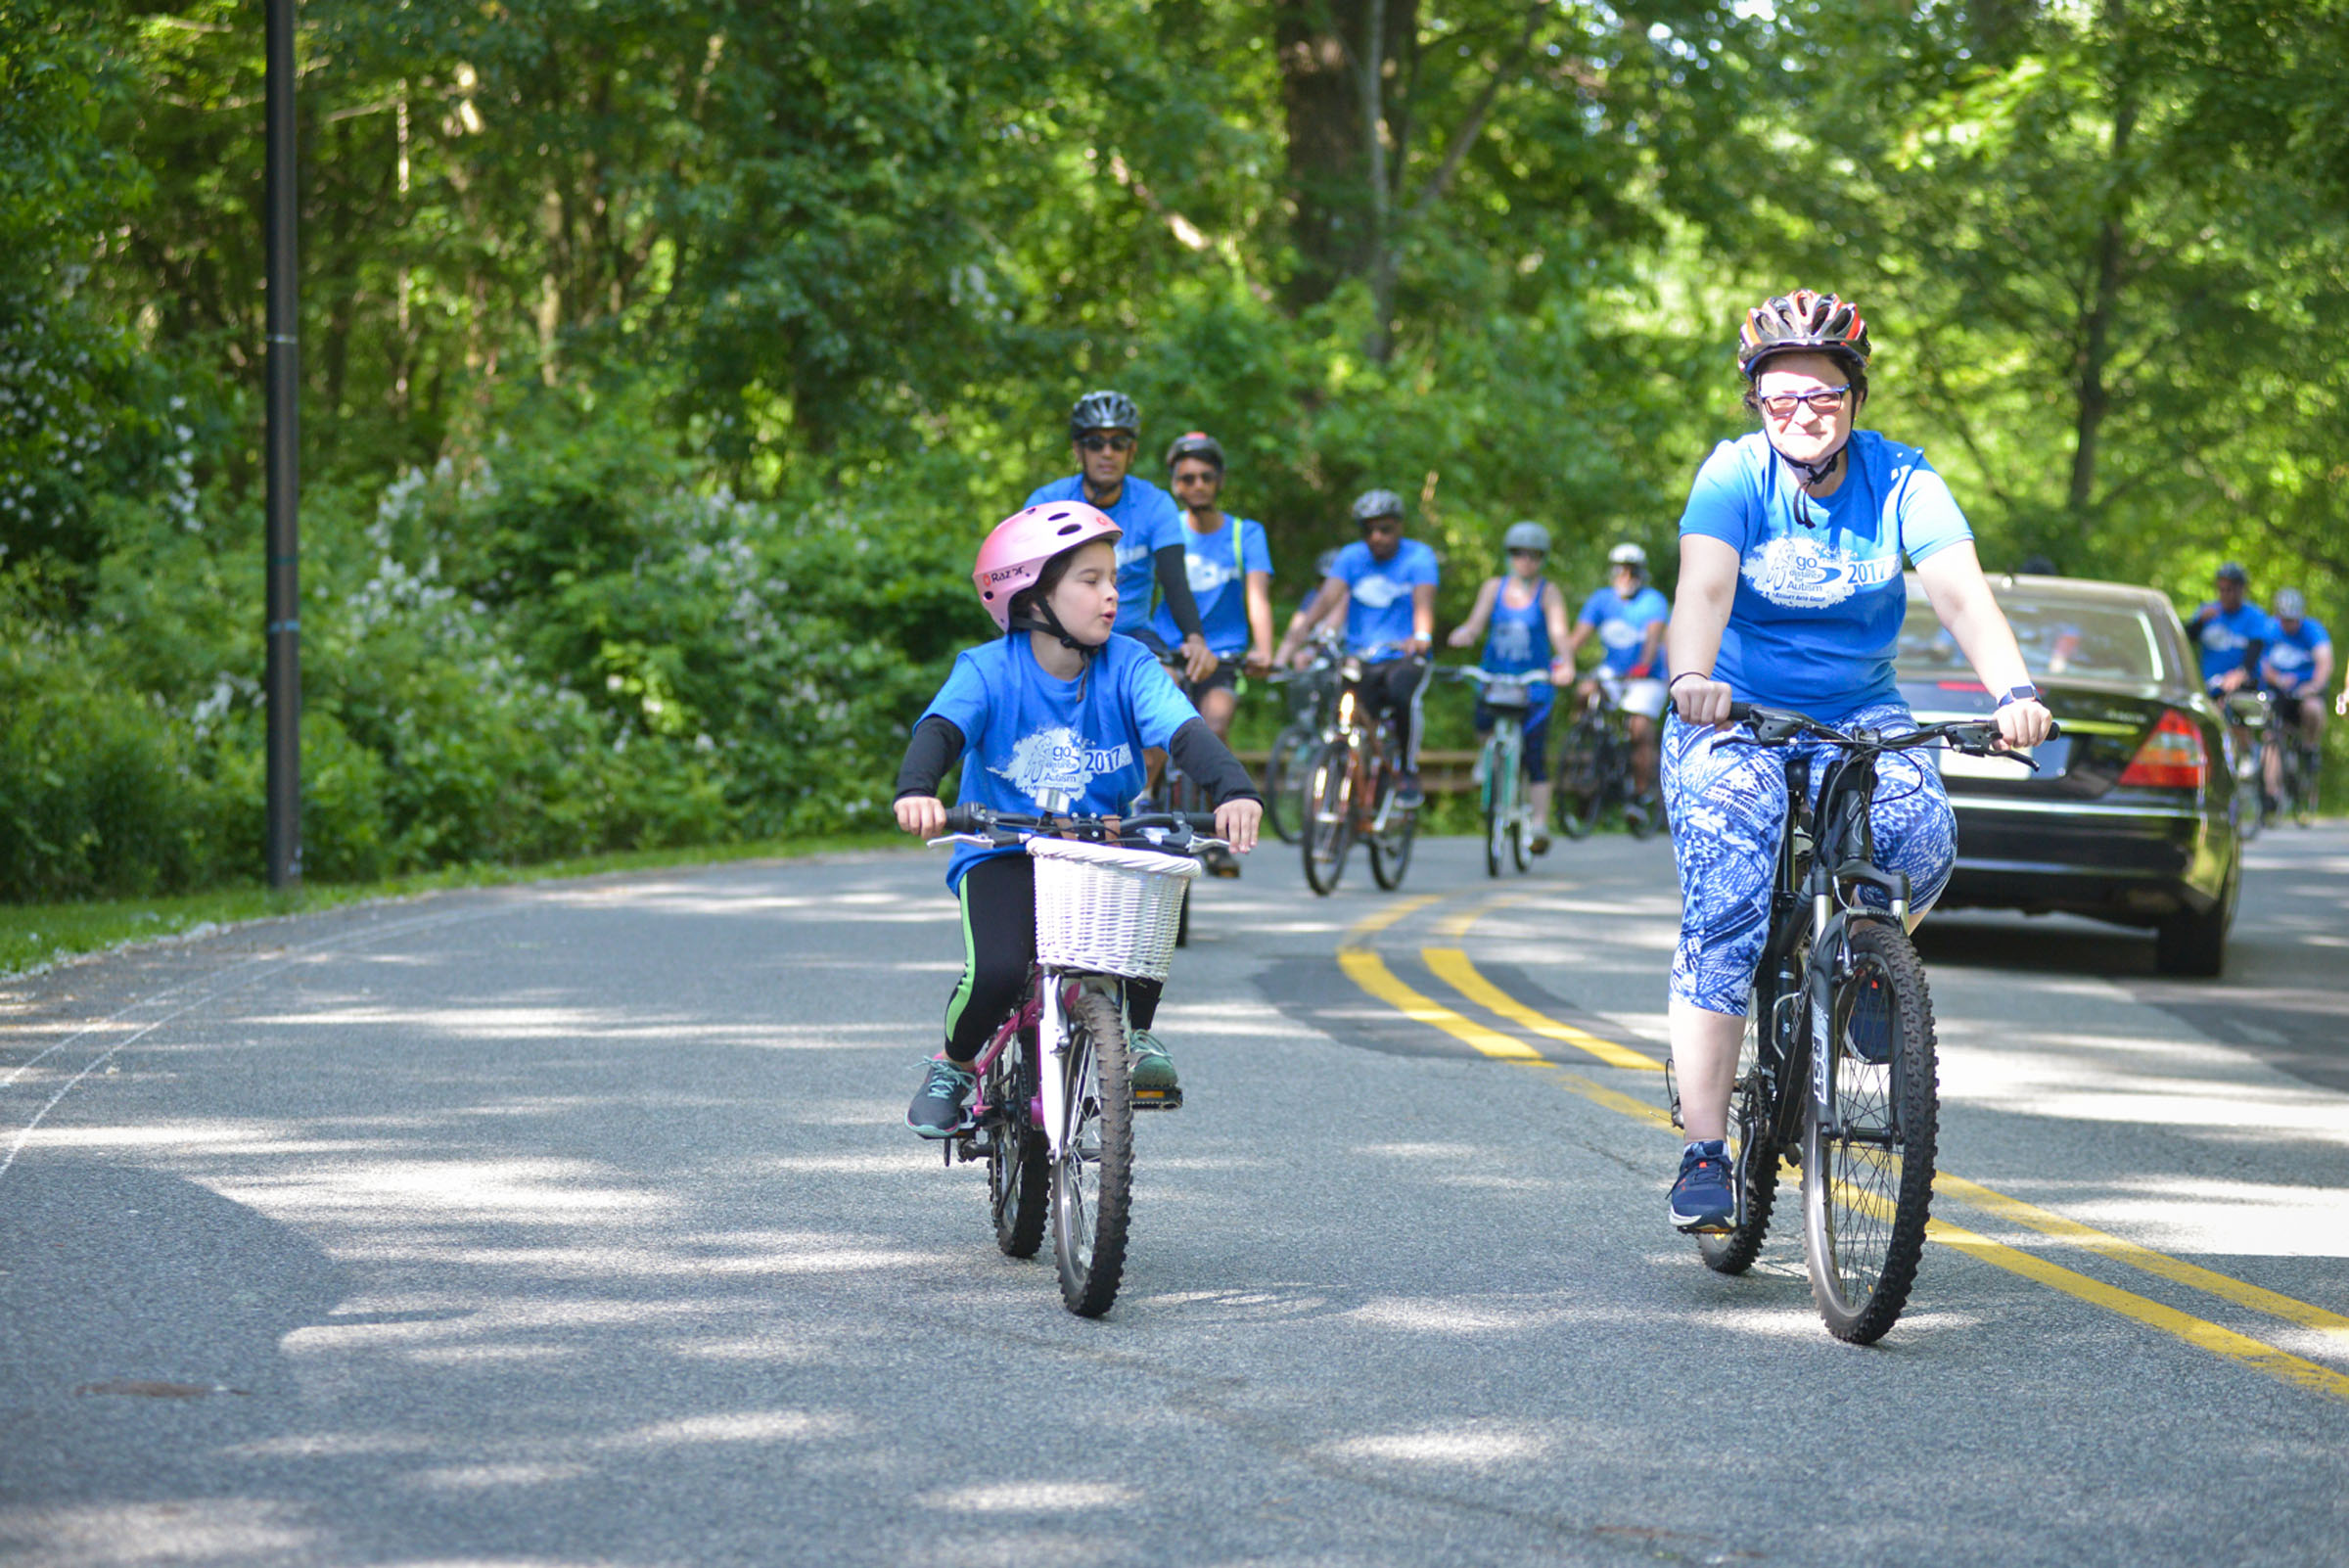 2017-06-04 GTD4A Charity Bike Ride - BCC - Paramus NJ-1987.jpg